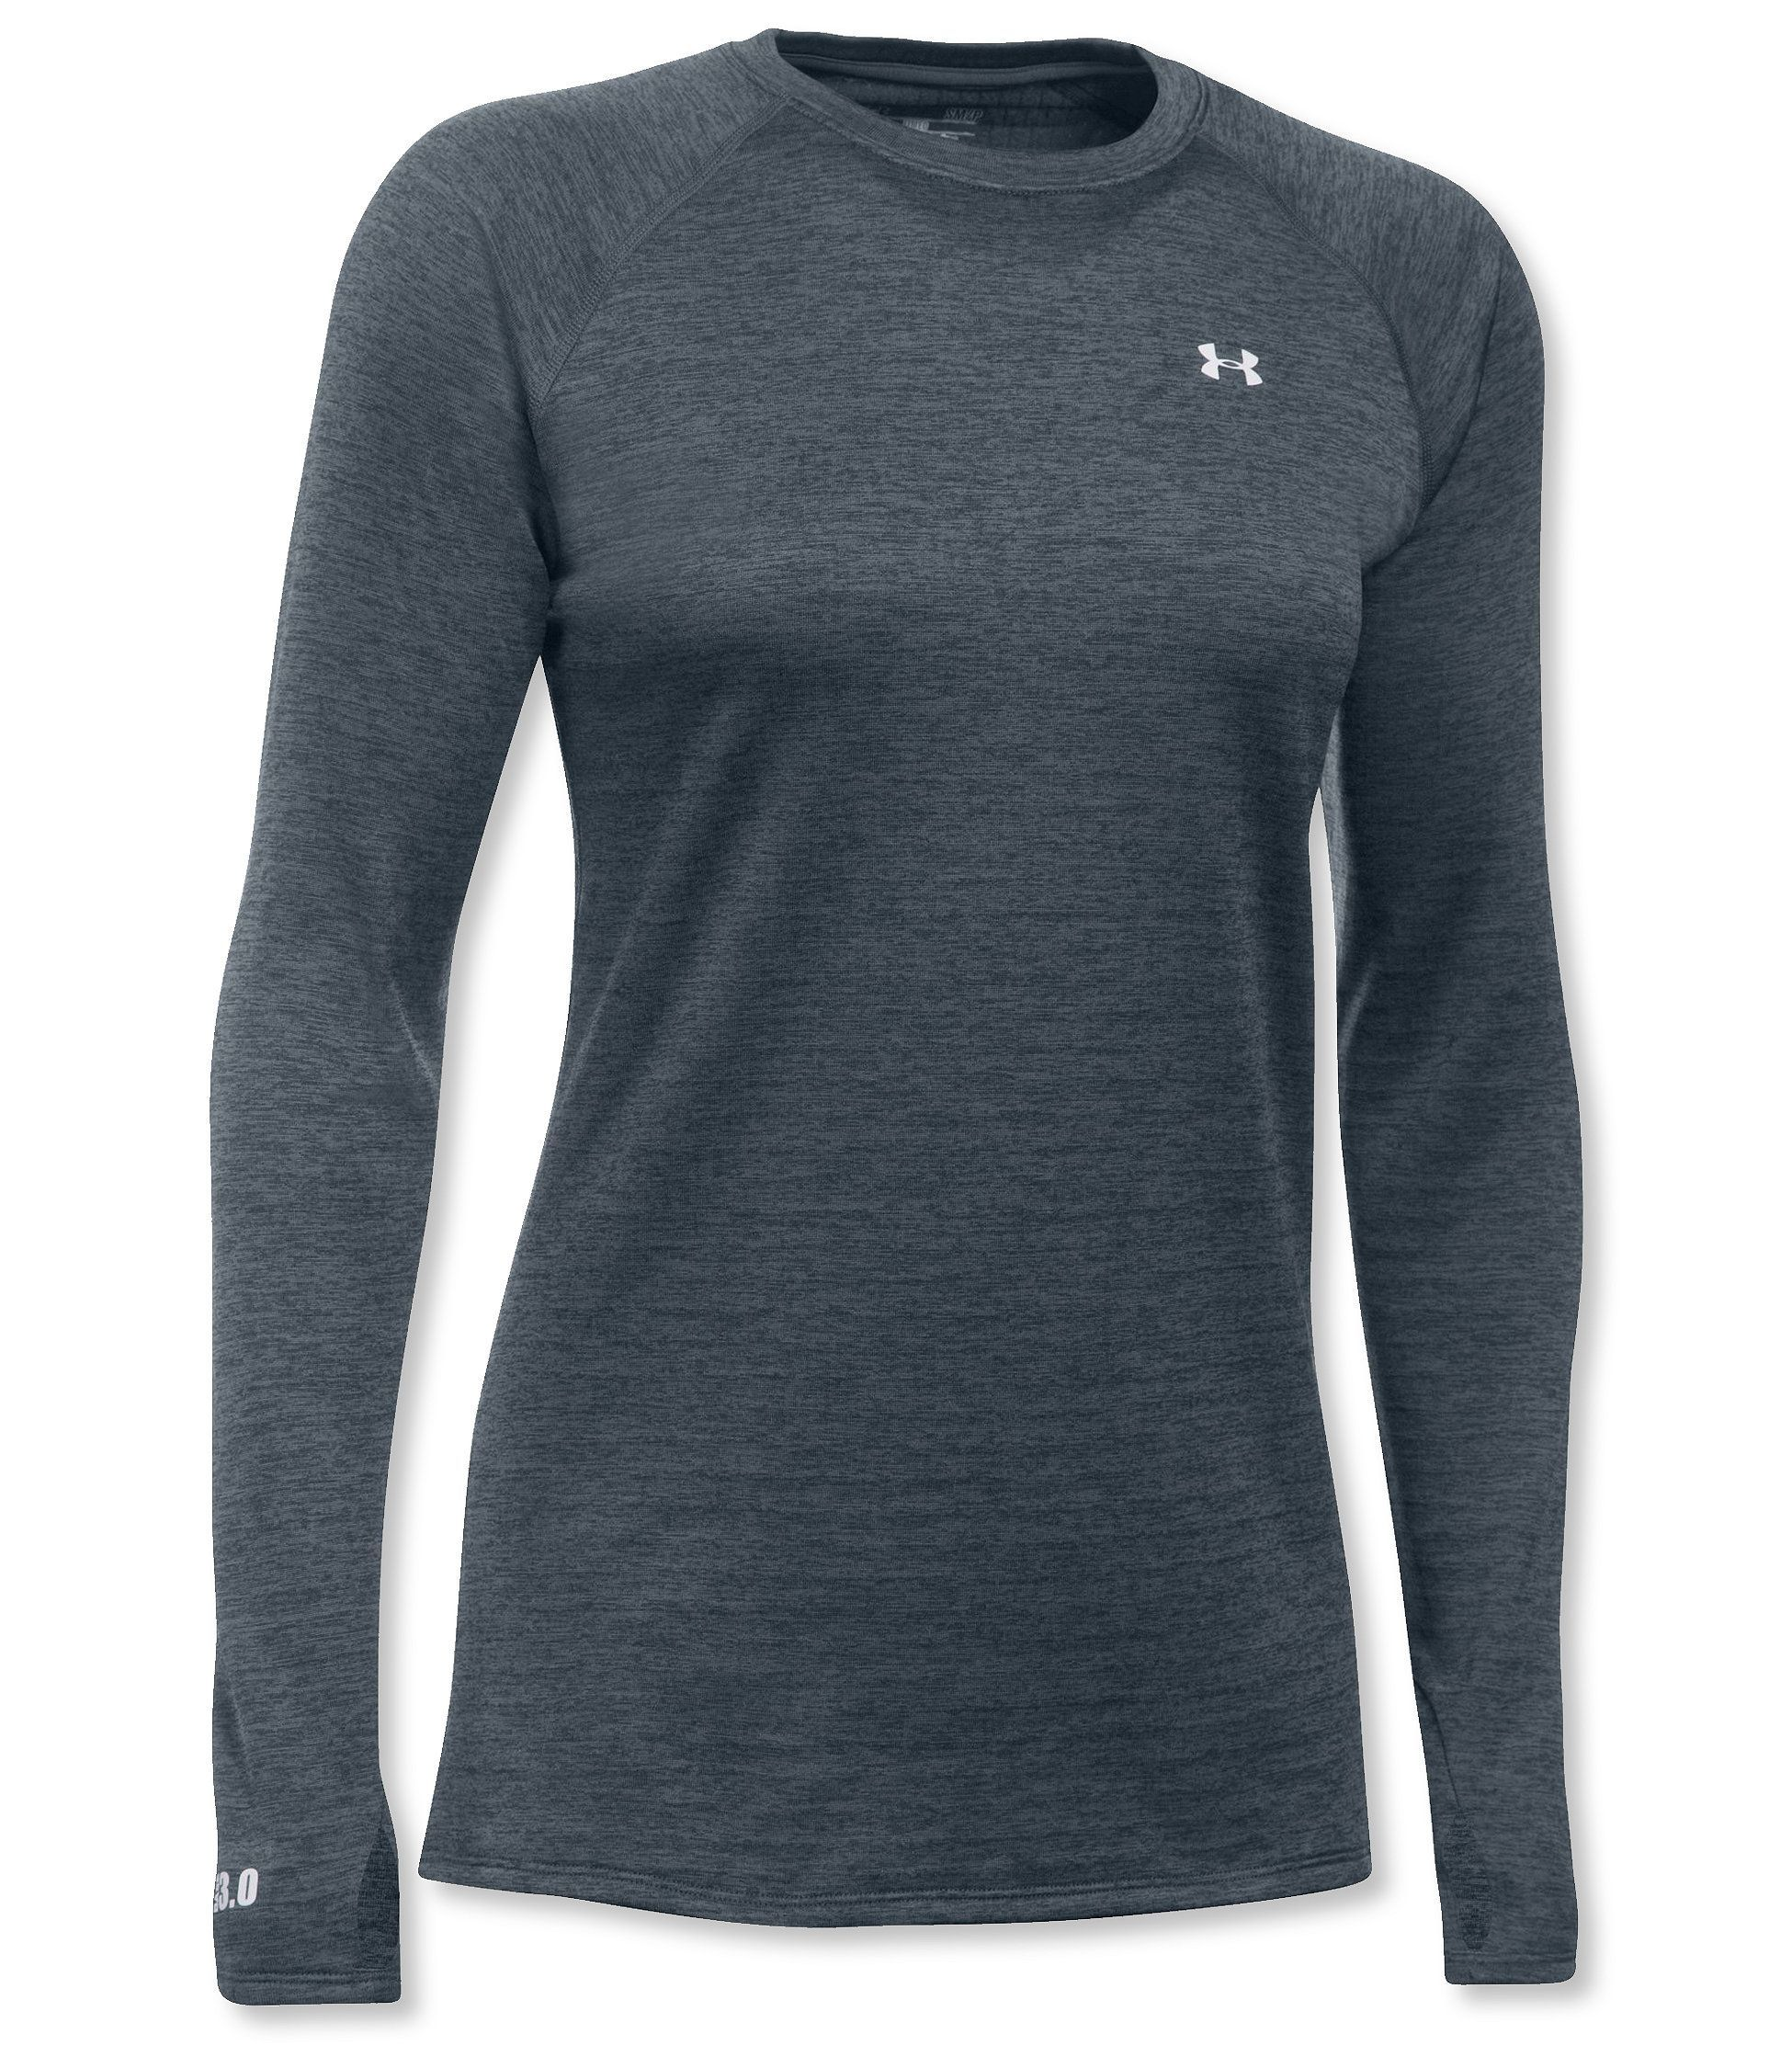 1778147b0 Under Armour Long Sleeve Workout Shirt – EDGE Engineering and ...